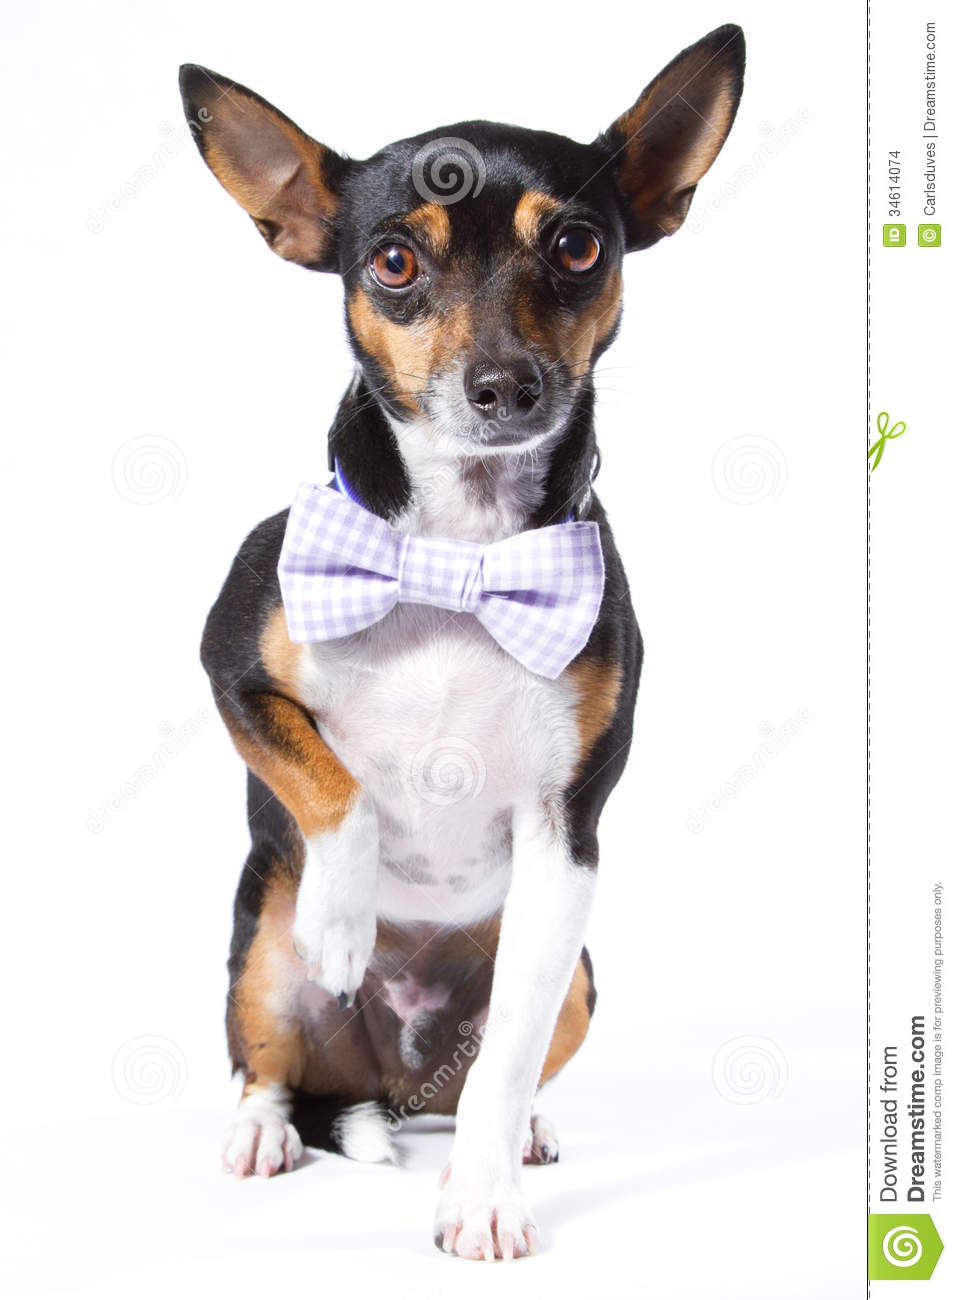 Popular Bow Tie Bow Adorable Dog - dog-bowtie-cute-bow-tie-34614074  Perfect Image Reference_805242  .jpg